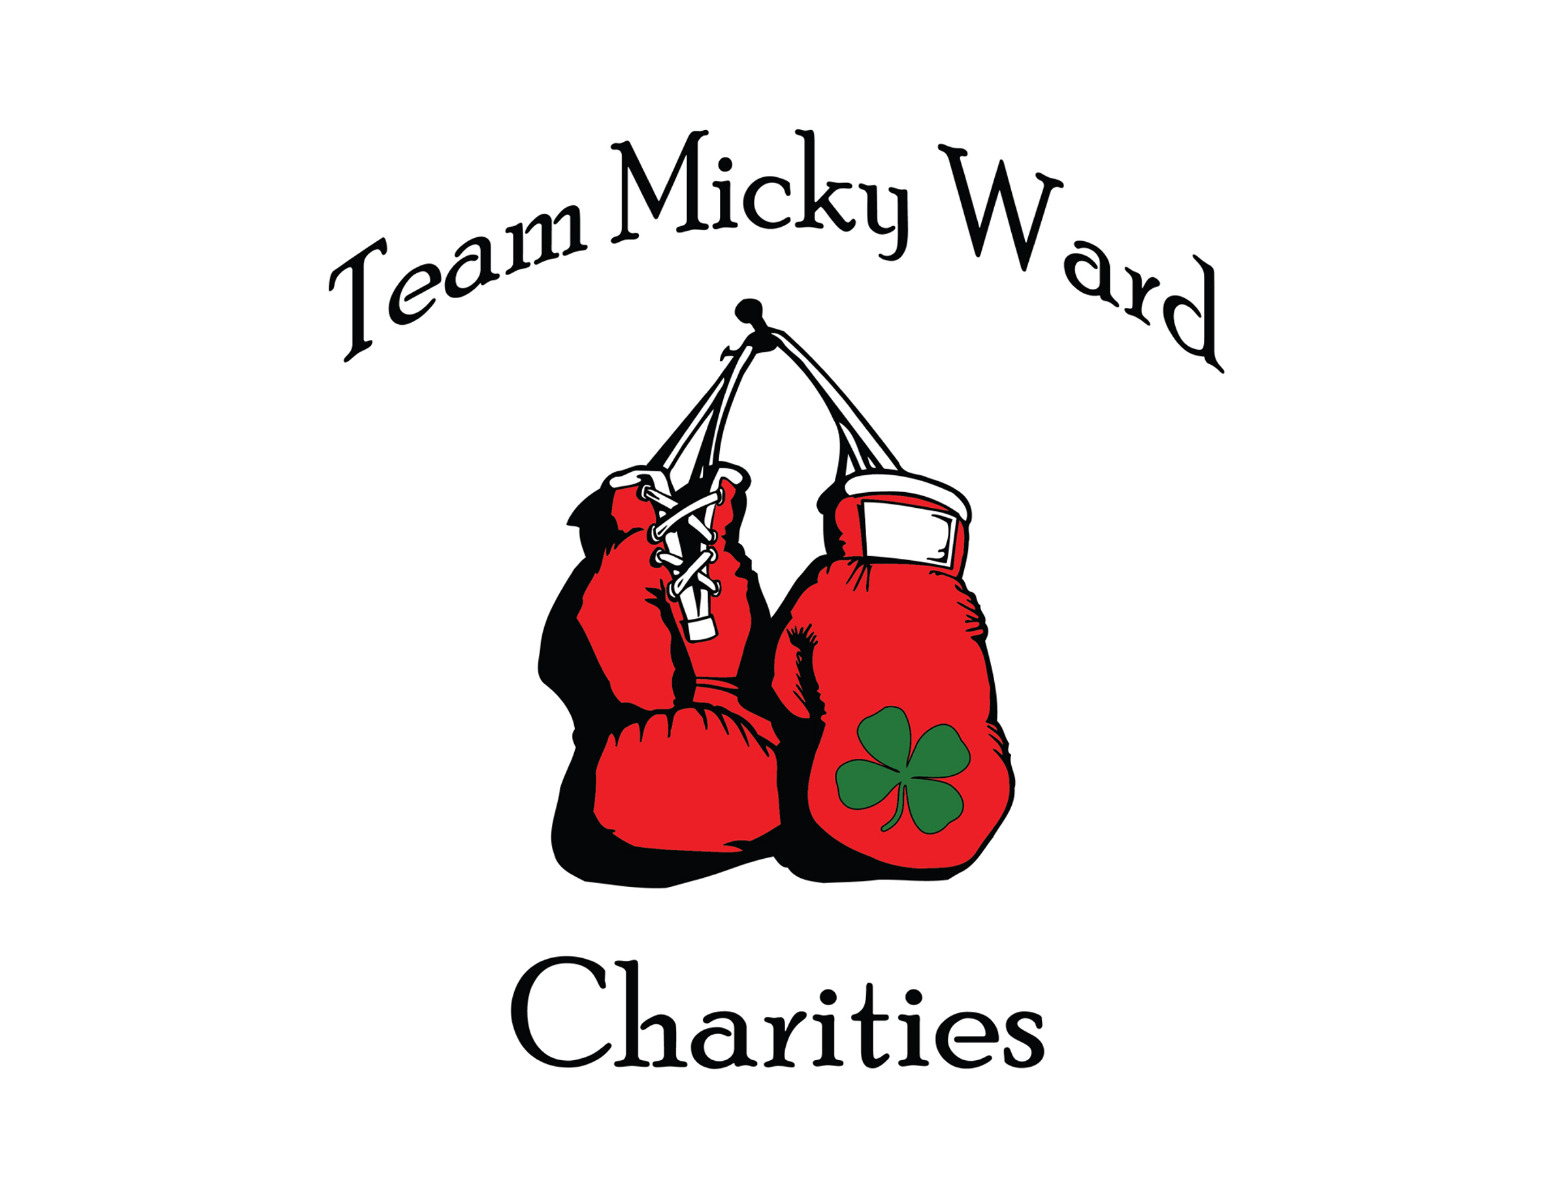 TEAM MICKY WARD CHARITIES